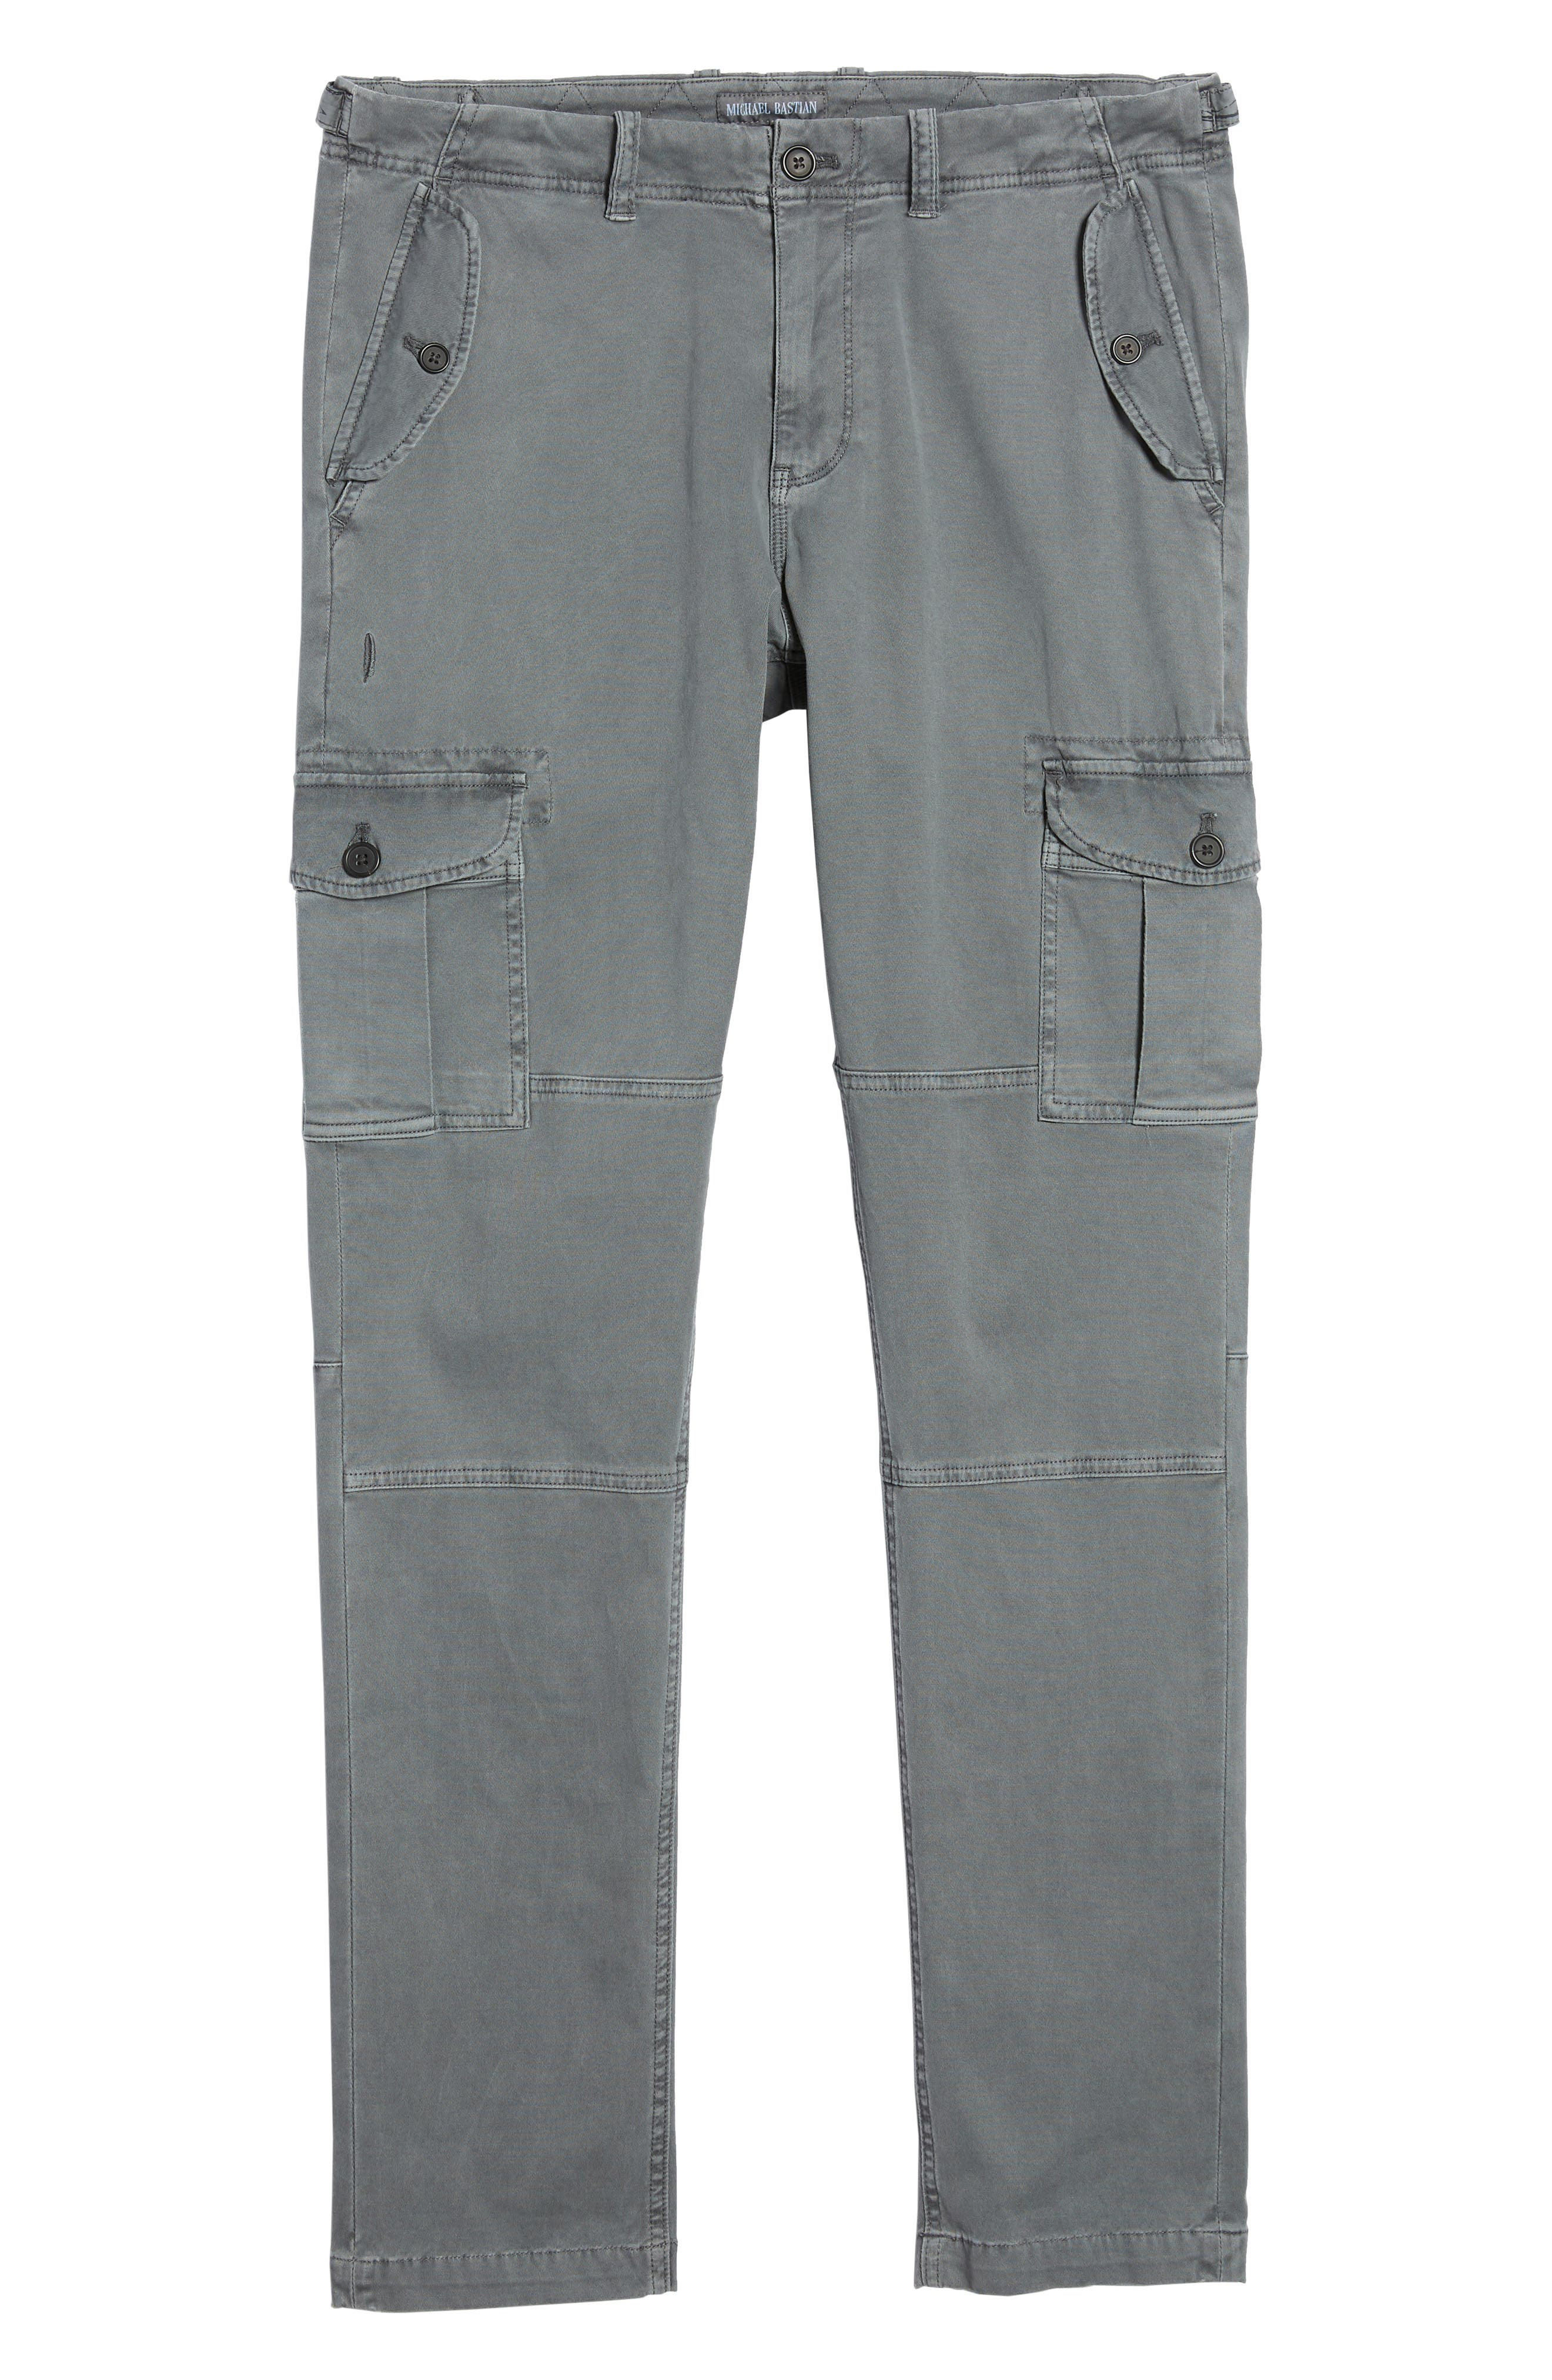 Stretch Twill Cargo Pants,                             Alternate thumbnail 6, color,                             033